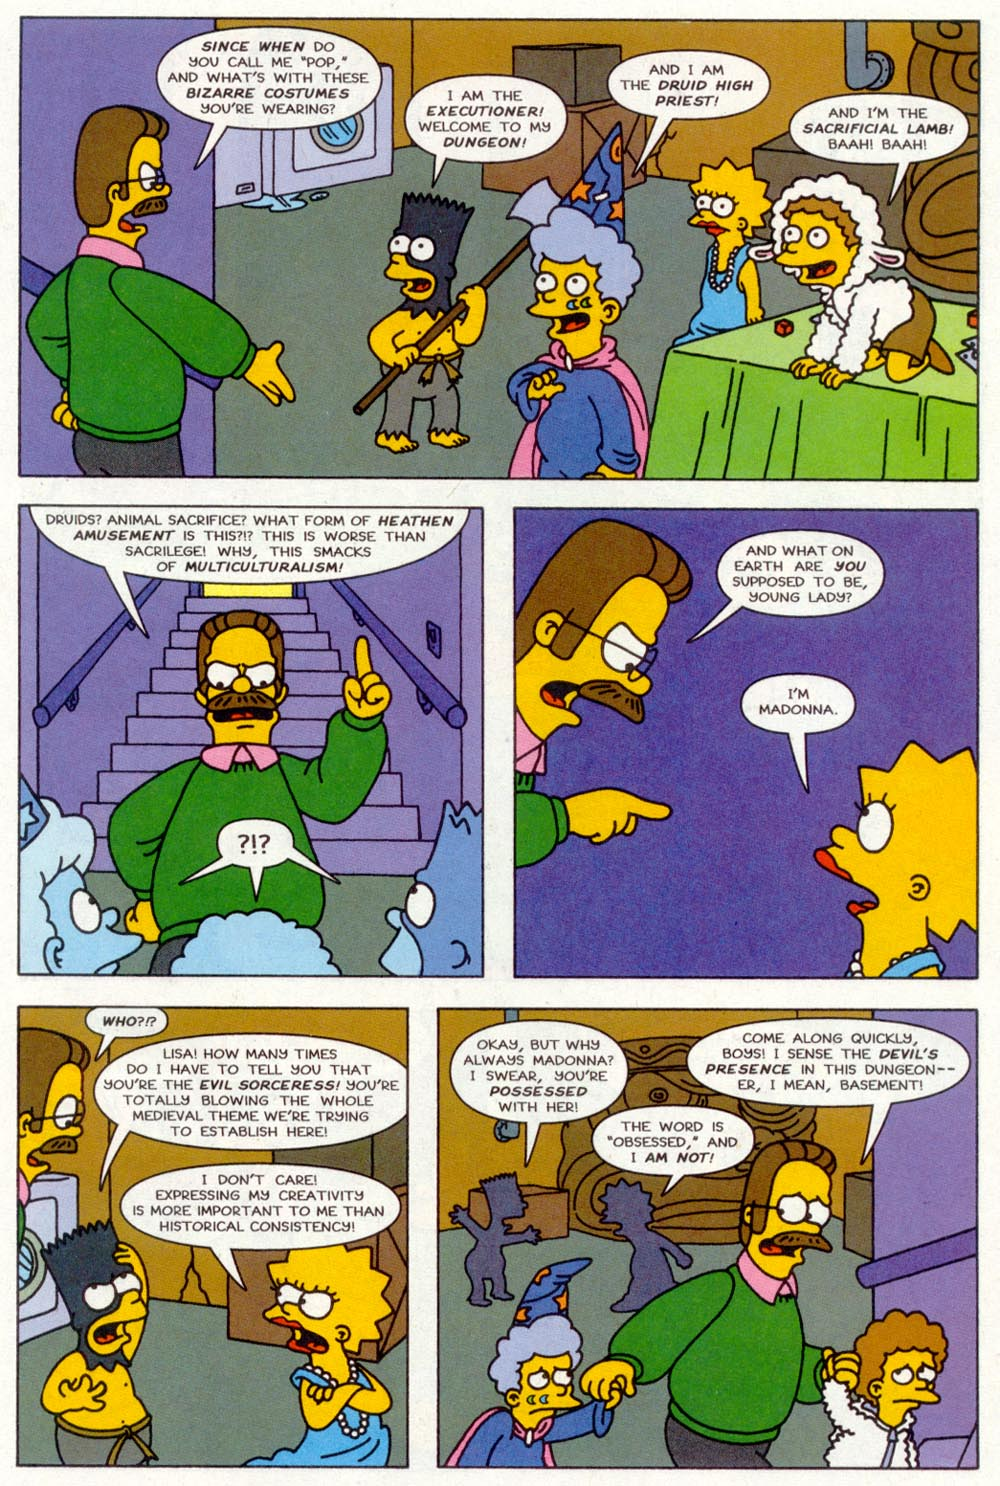 Read online Treehouse of Horror comic -  Issue #2 - 20